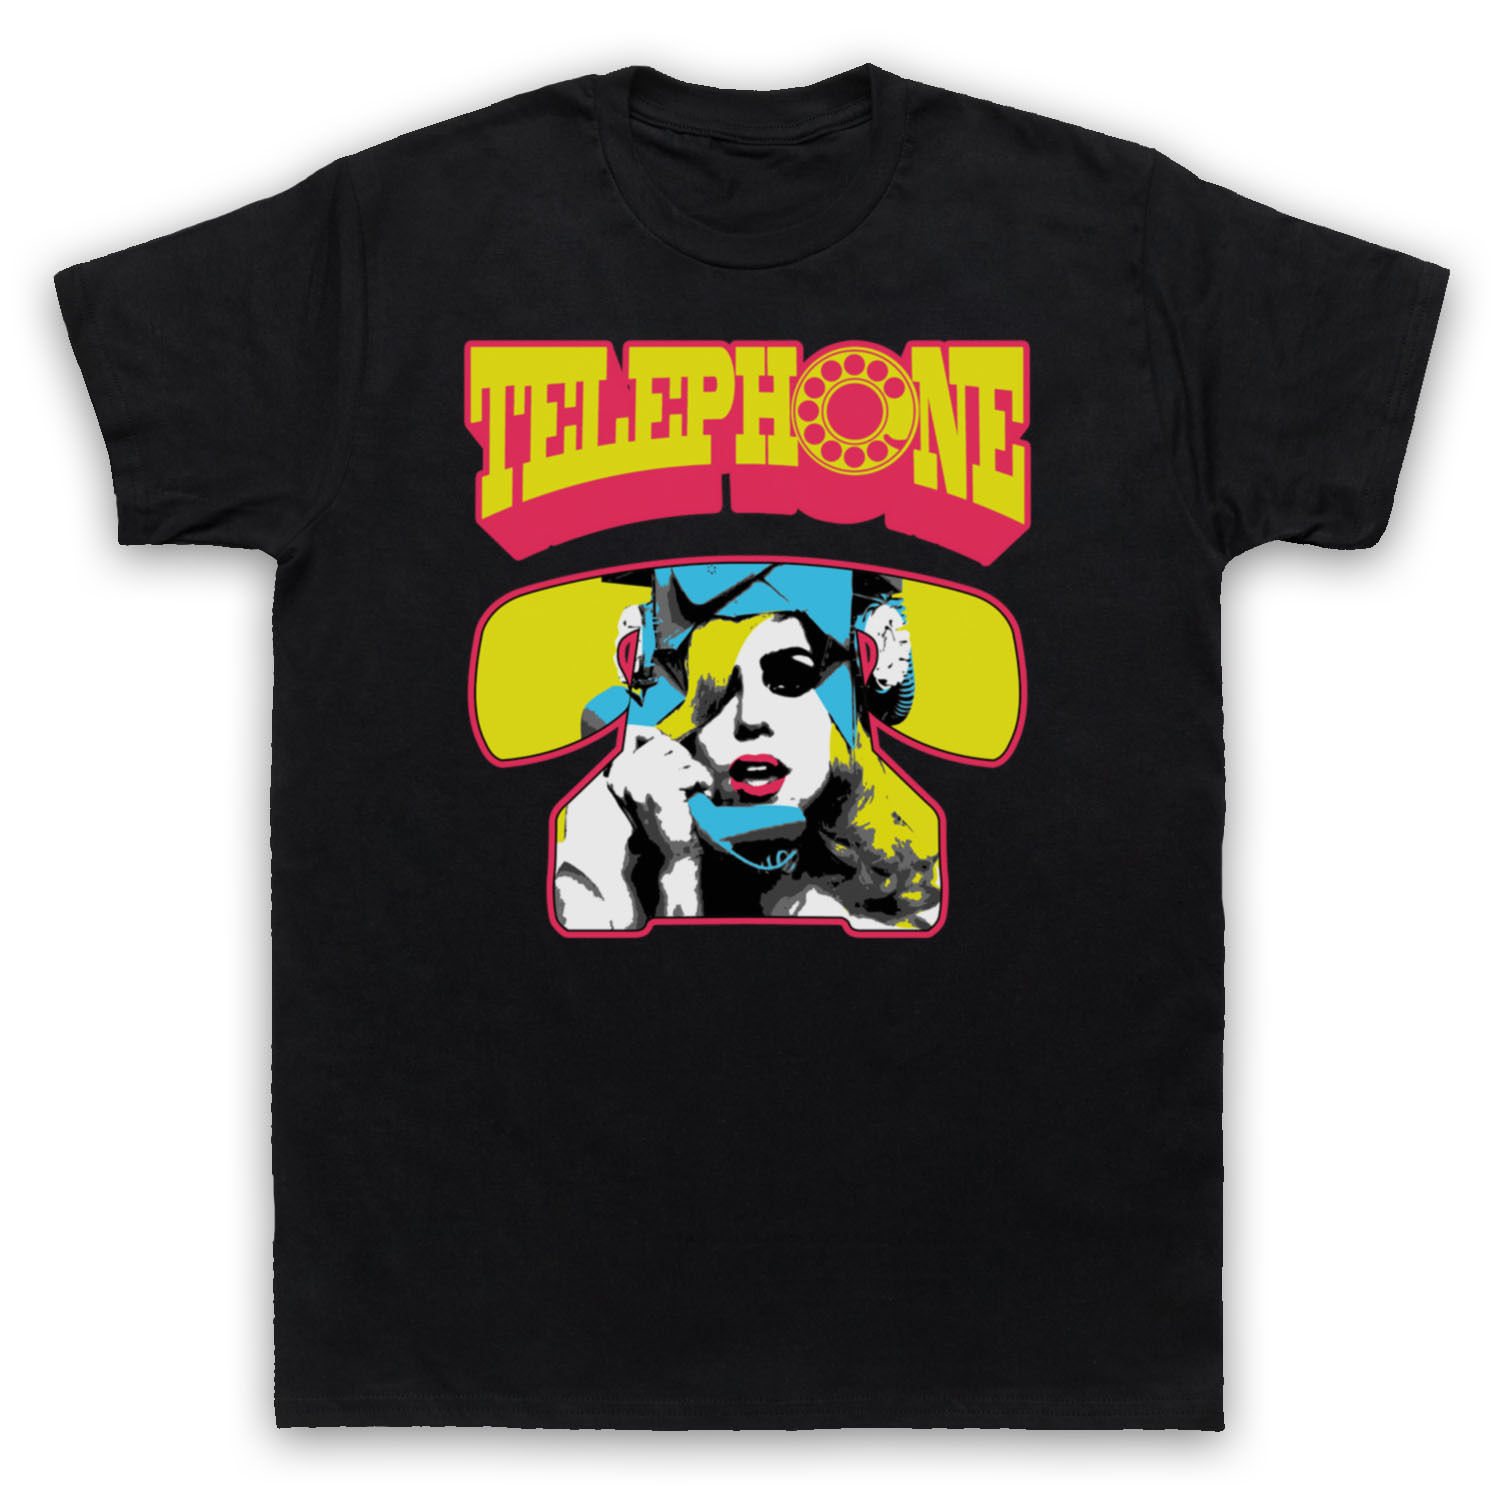 Womens T-Shirt LADY GAGA TELEPHONE MONSTER UNOFFICIAL POP STAR ICON T-SHIRT SIZES